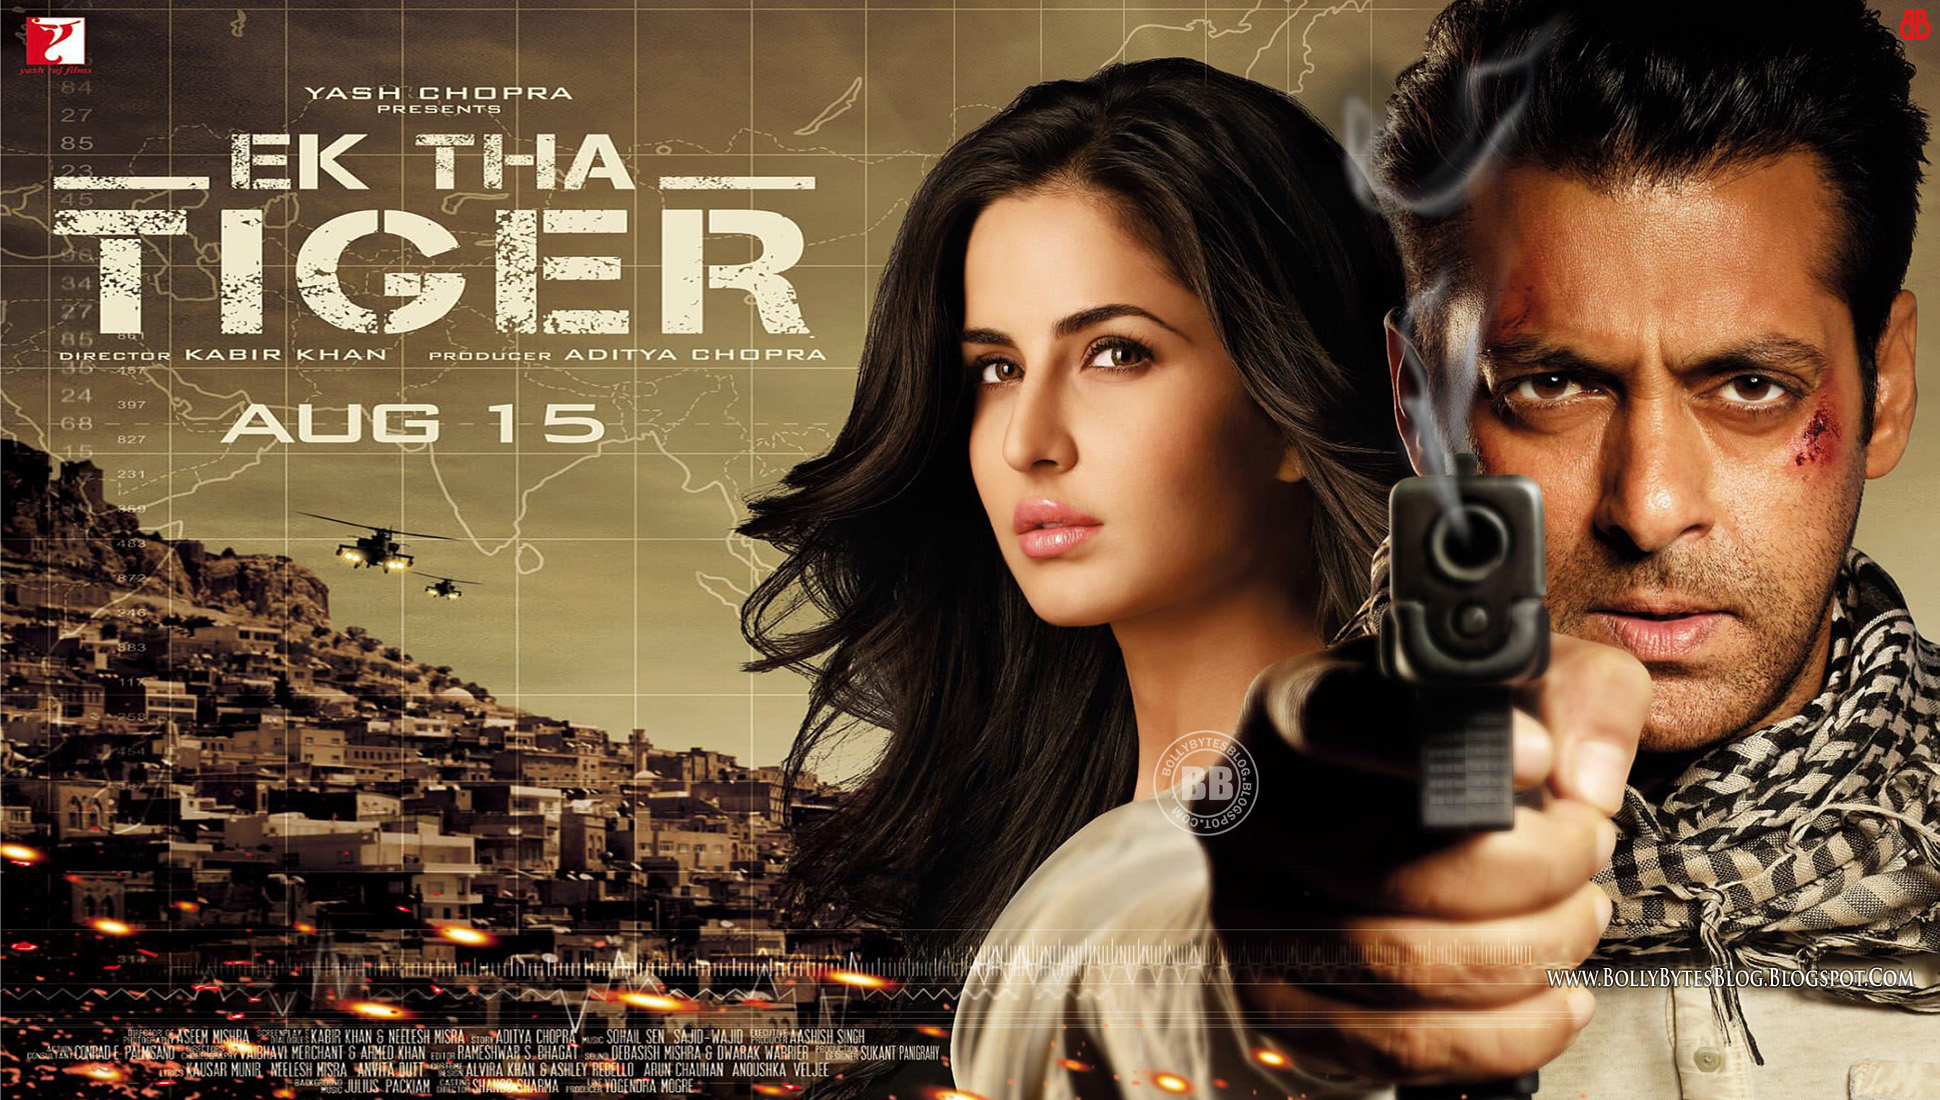 Salman Khan And Katrina Kaif In Ek Tha Tiger: Ek Tha Tiger HD Wallpapers Exclusive!!